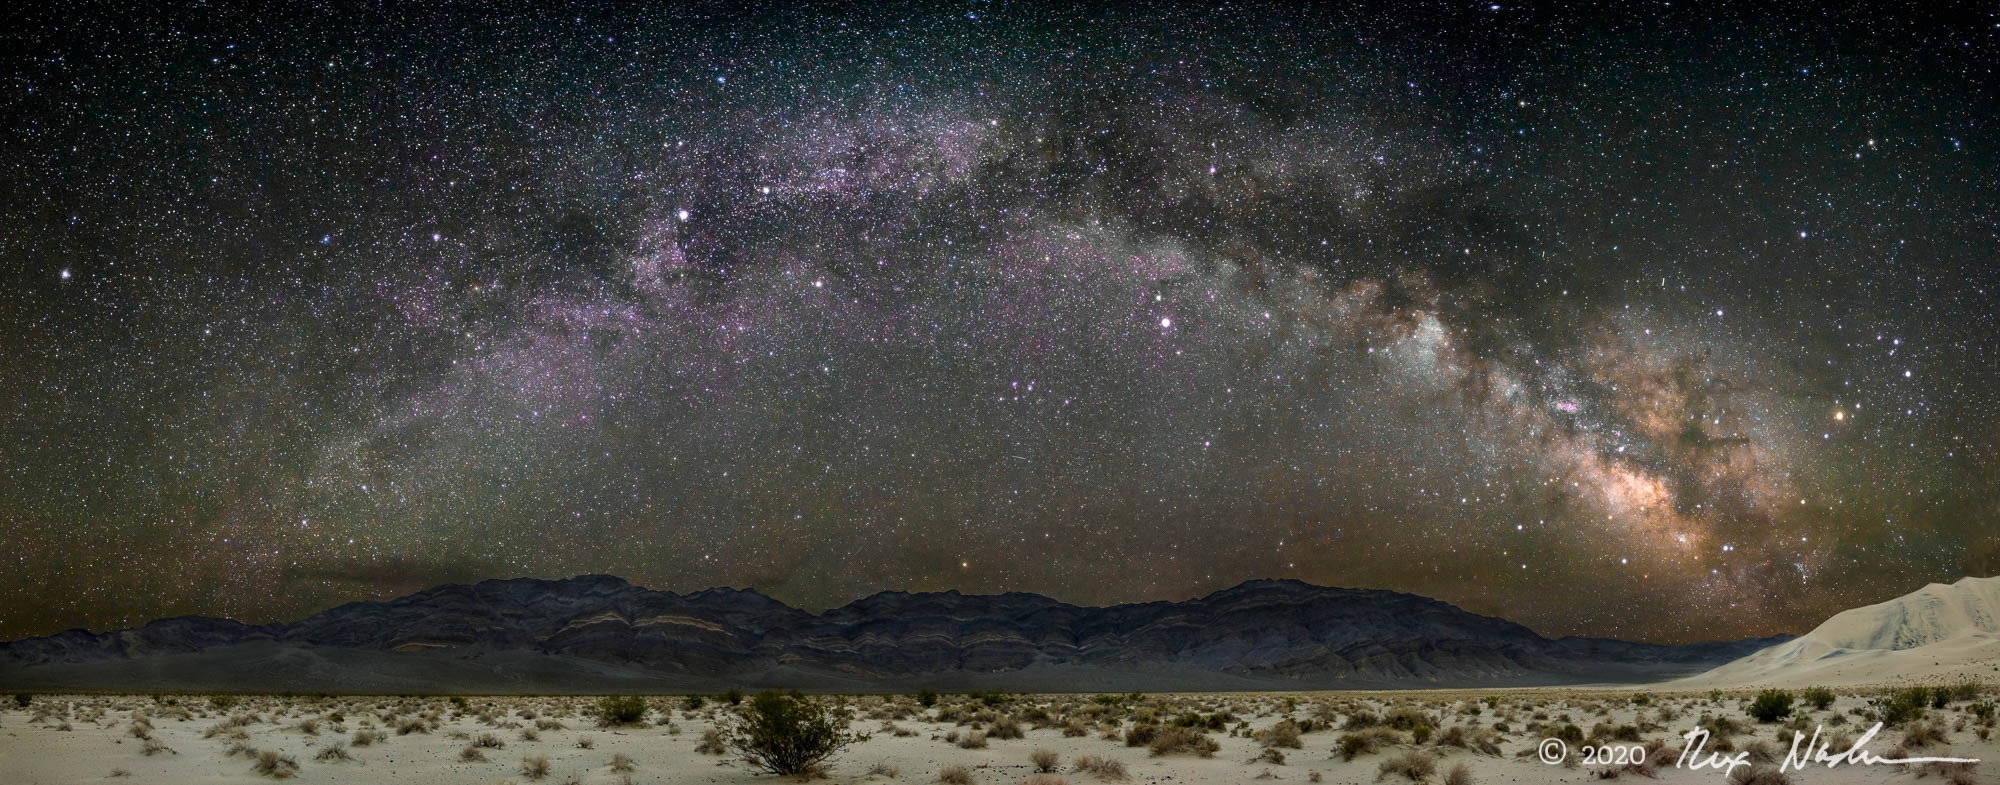 Dark Matter - Death Valley